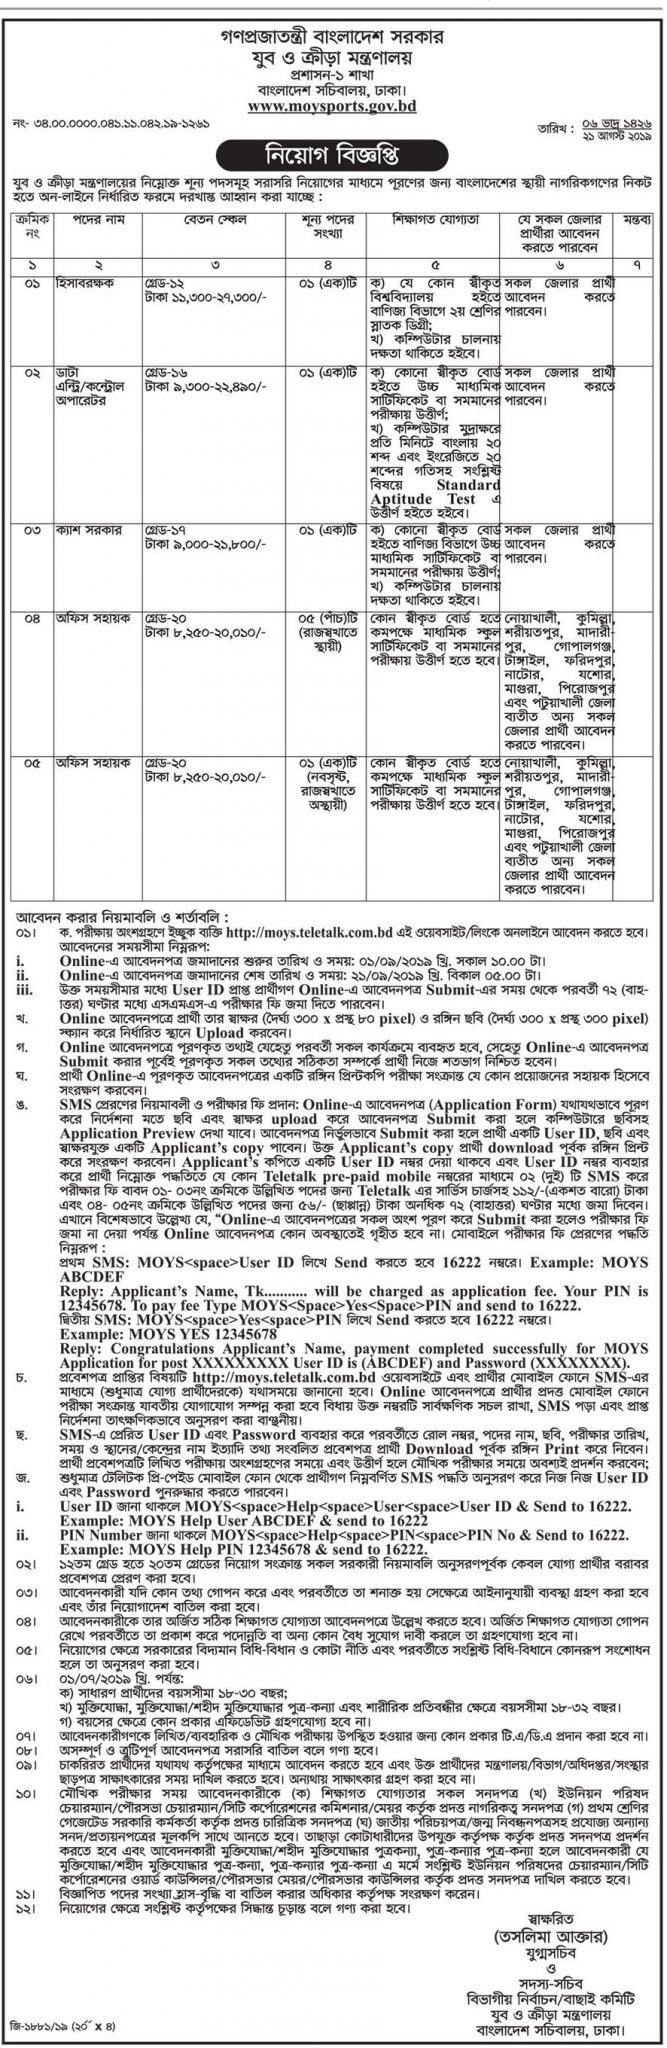 Ministry Of Youth and Sports Job Circular 2019